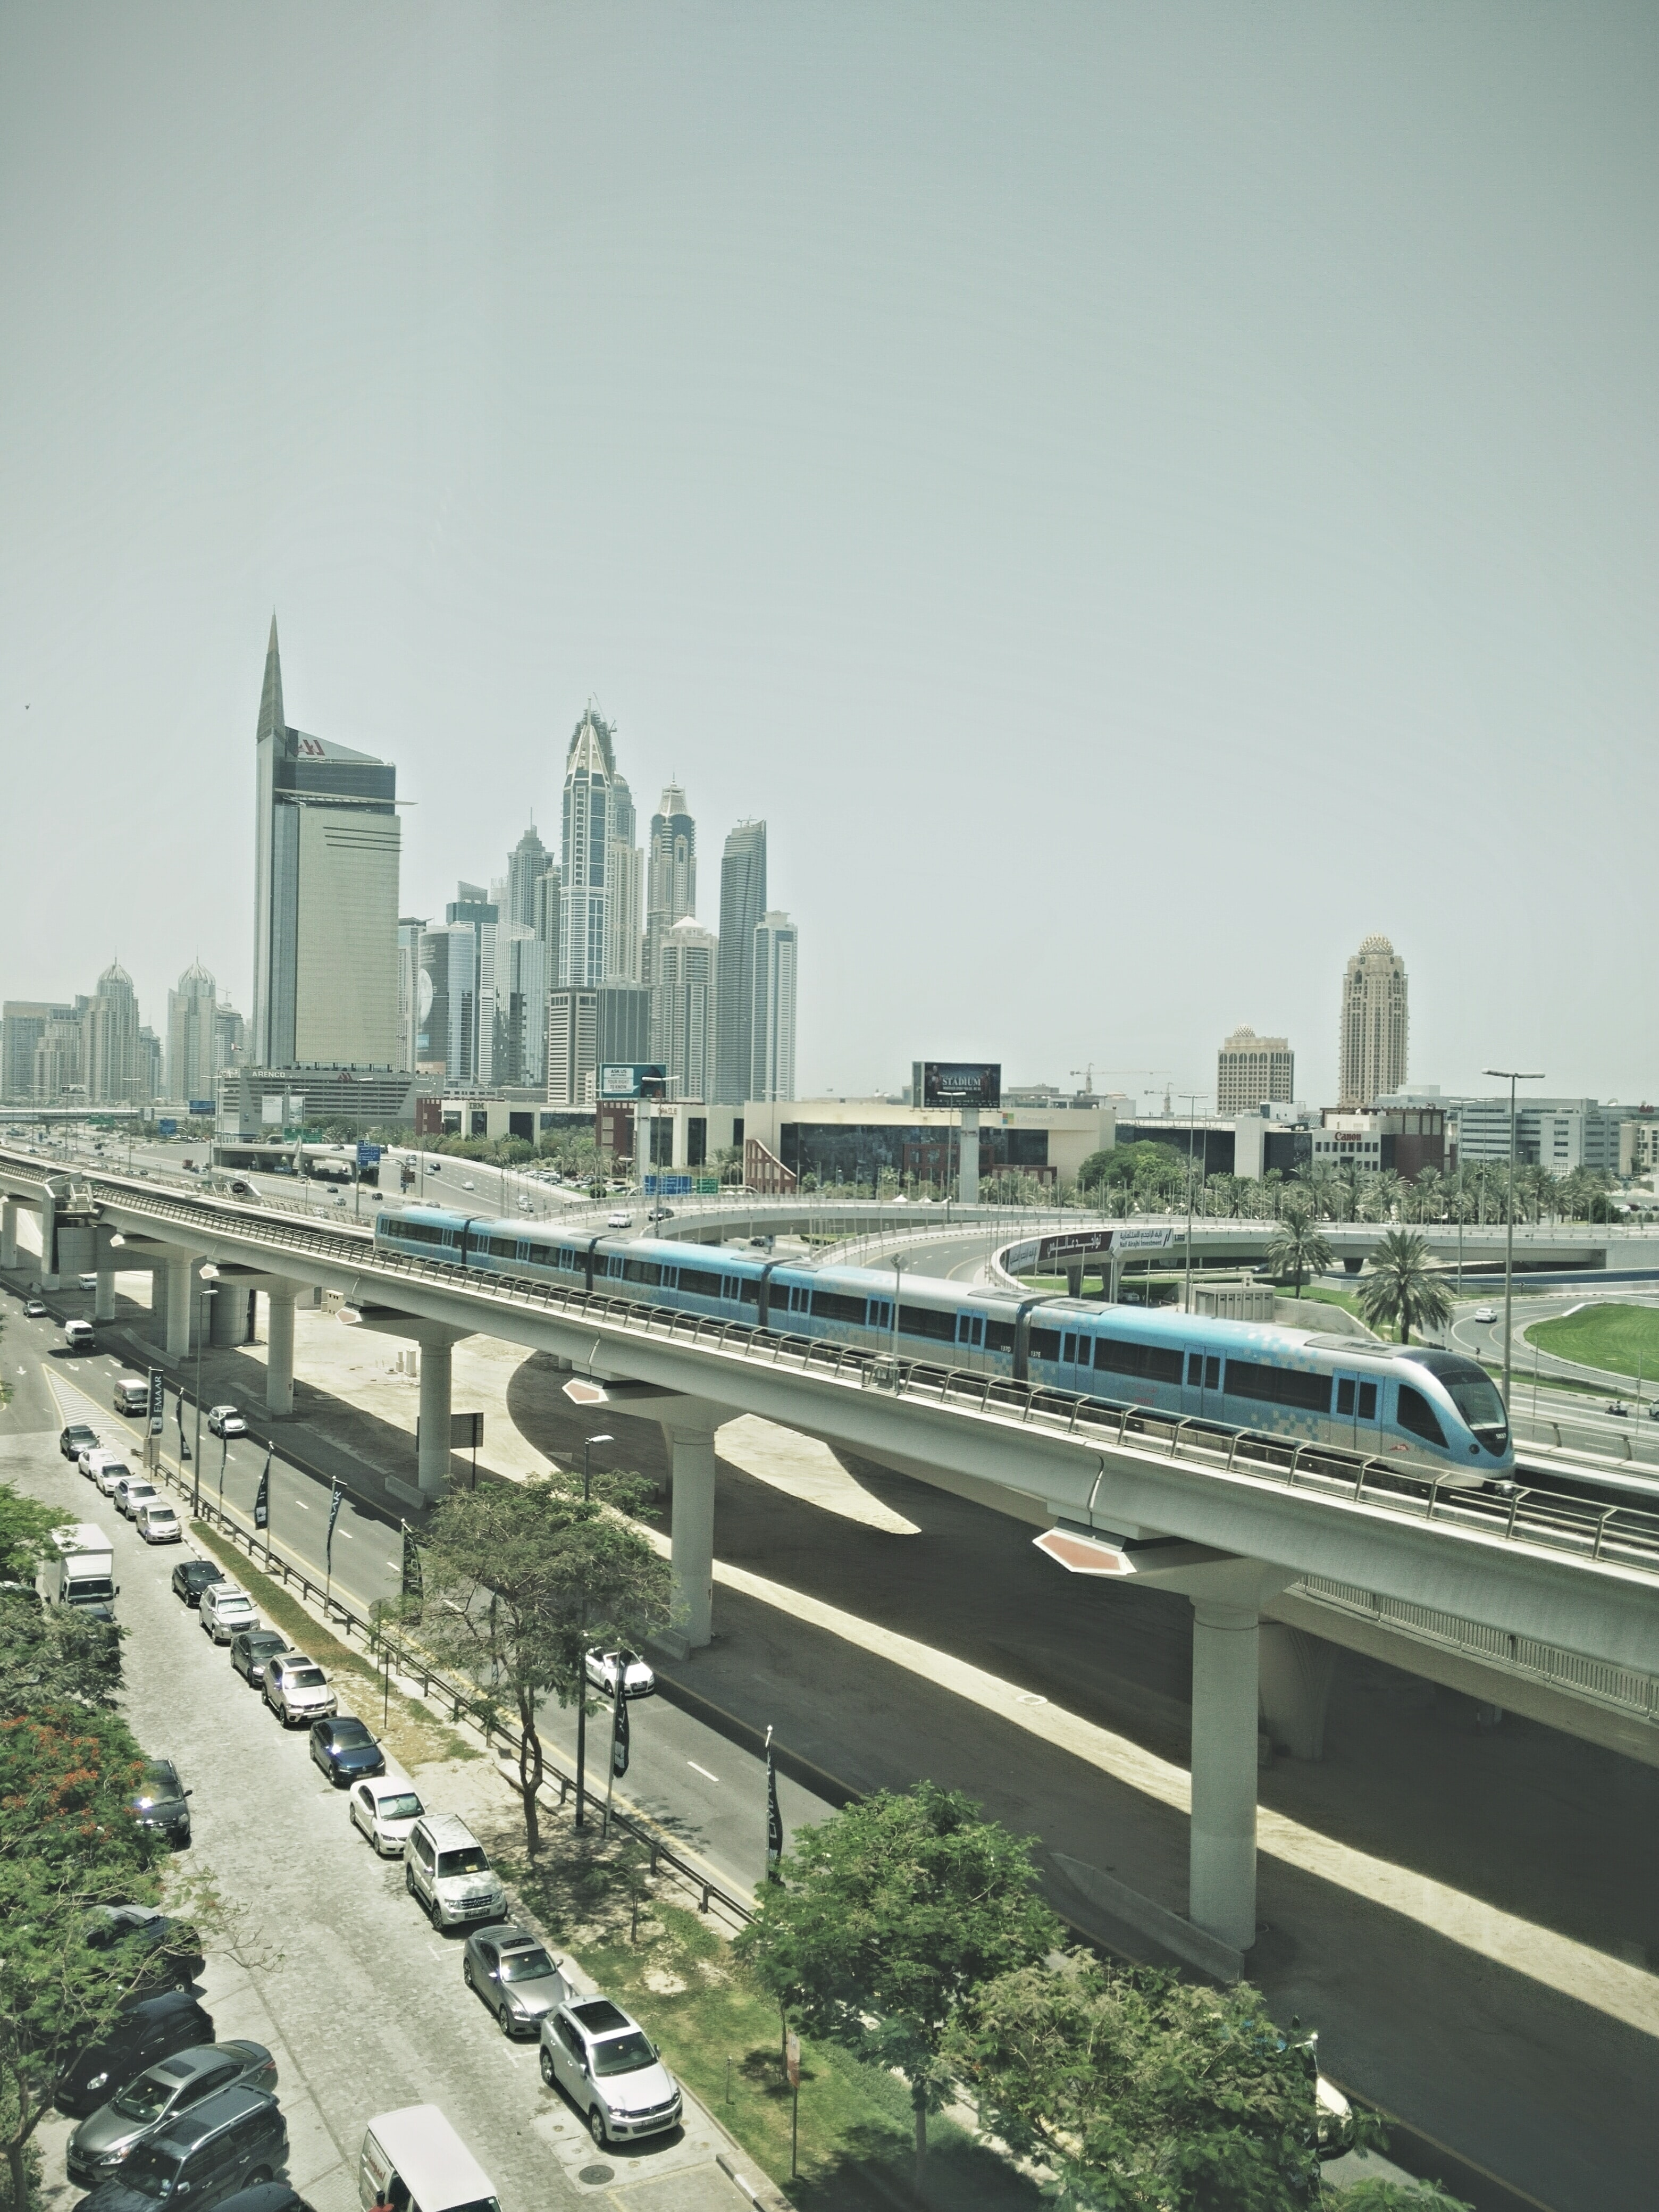 Train on bridge in Dubai with city skyscrapers in background and cars parked on pavement below